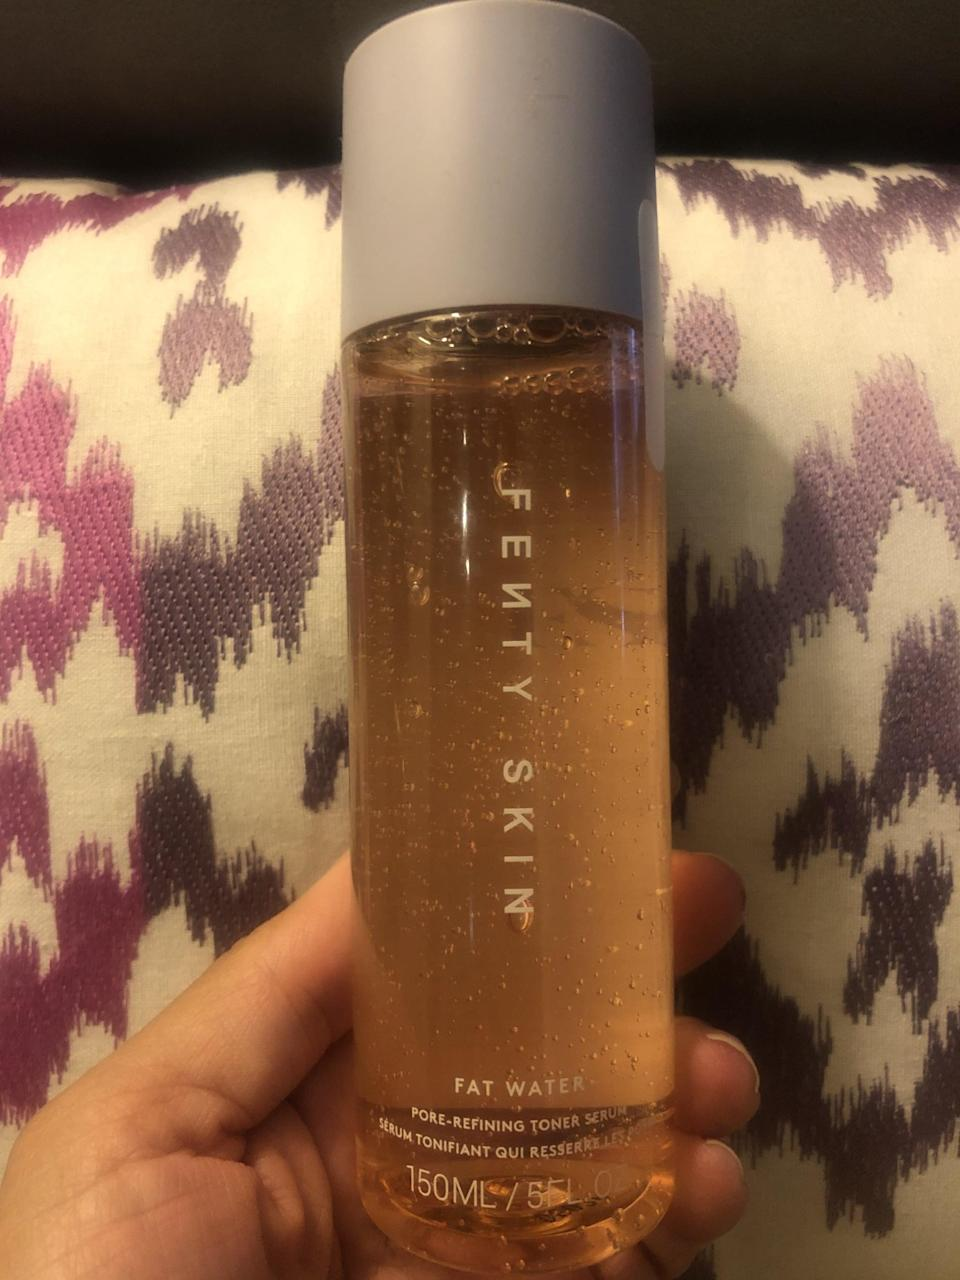 """<p>Because we're all busy, this Fenty Skin Fat Water Pore-Refining Toner Serum ($28) does double duty as both a pore-refining toner <em>and</em> a rich, hydrating serum. It brightens skin with niacinamide and vitamin C-rich Barbados cherry, plus features anti-inflammatory Japanese raisin tree extract for an <a href=""""https://www.popsugar.com/beauty/stressed-skin-tips-47406359"""" class=""""link rapid-noclick-resp"""" rel=""""nofollow noopener"""" target=""""_blank"""" data-ylk=""""slk:instant skin detox"""">instant skin detox</a>.<br><br> Still, while all that's great, perhaps the best thing about this product is that it's meant to be applied right with your hands you don't waste even one single drop of its golden goodness.</p>"""